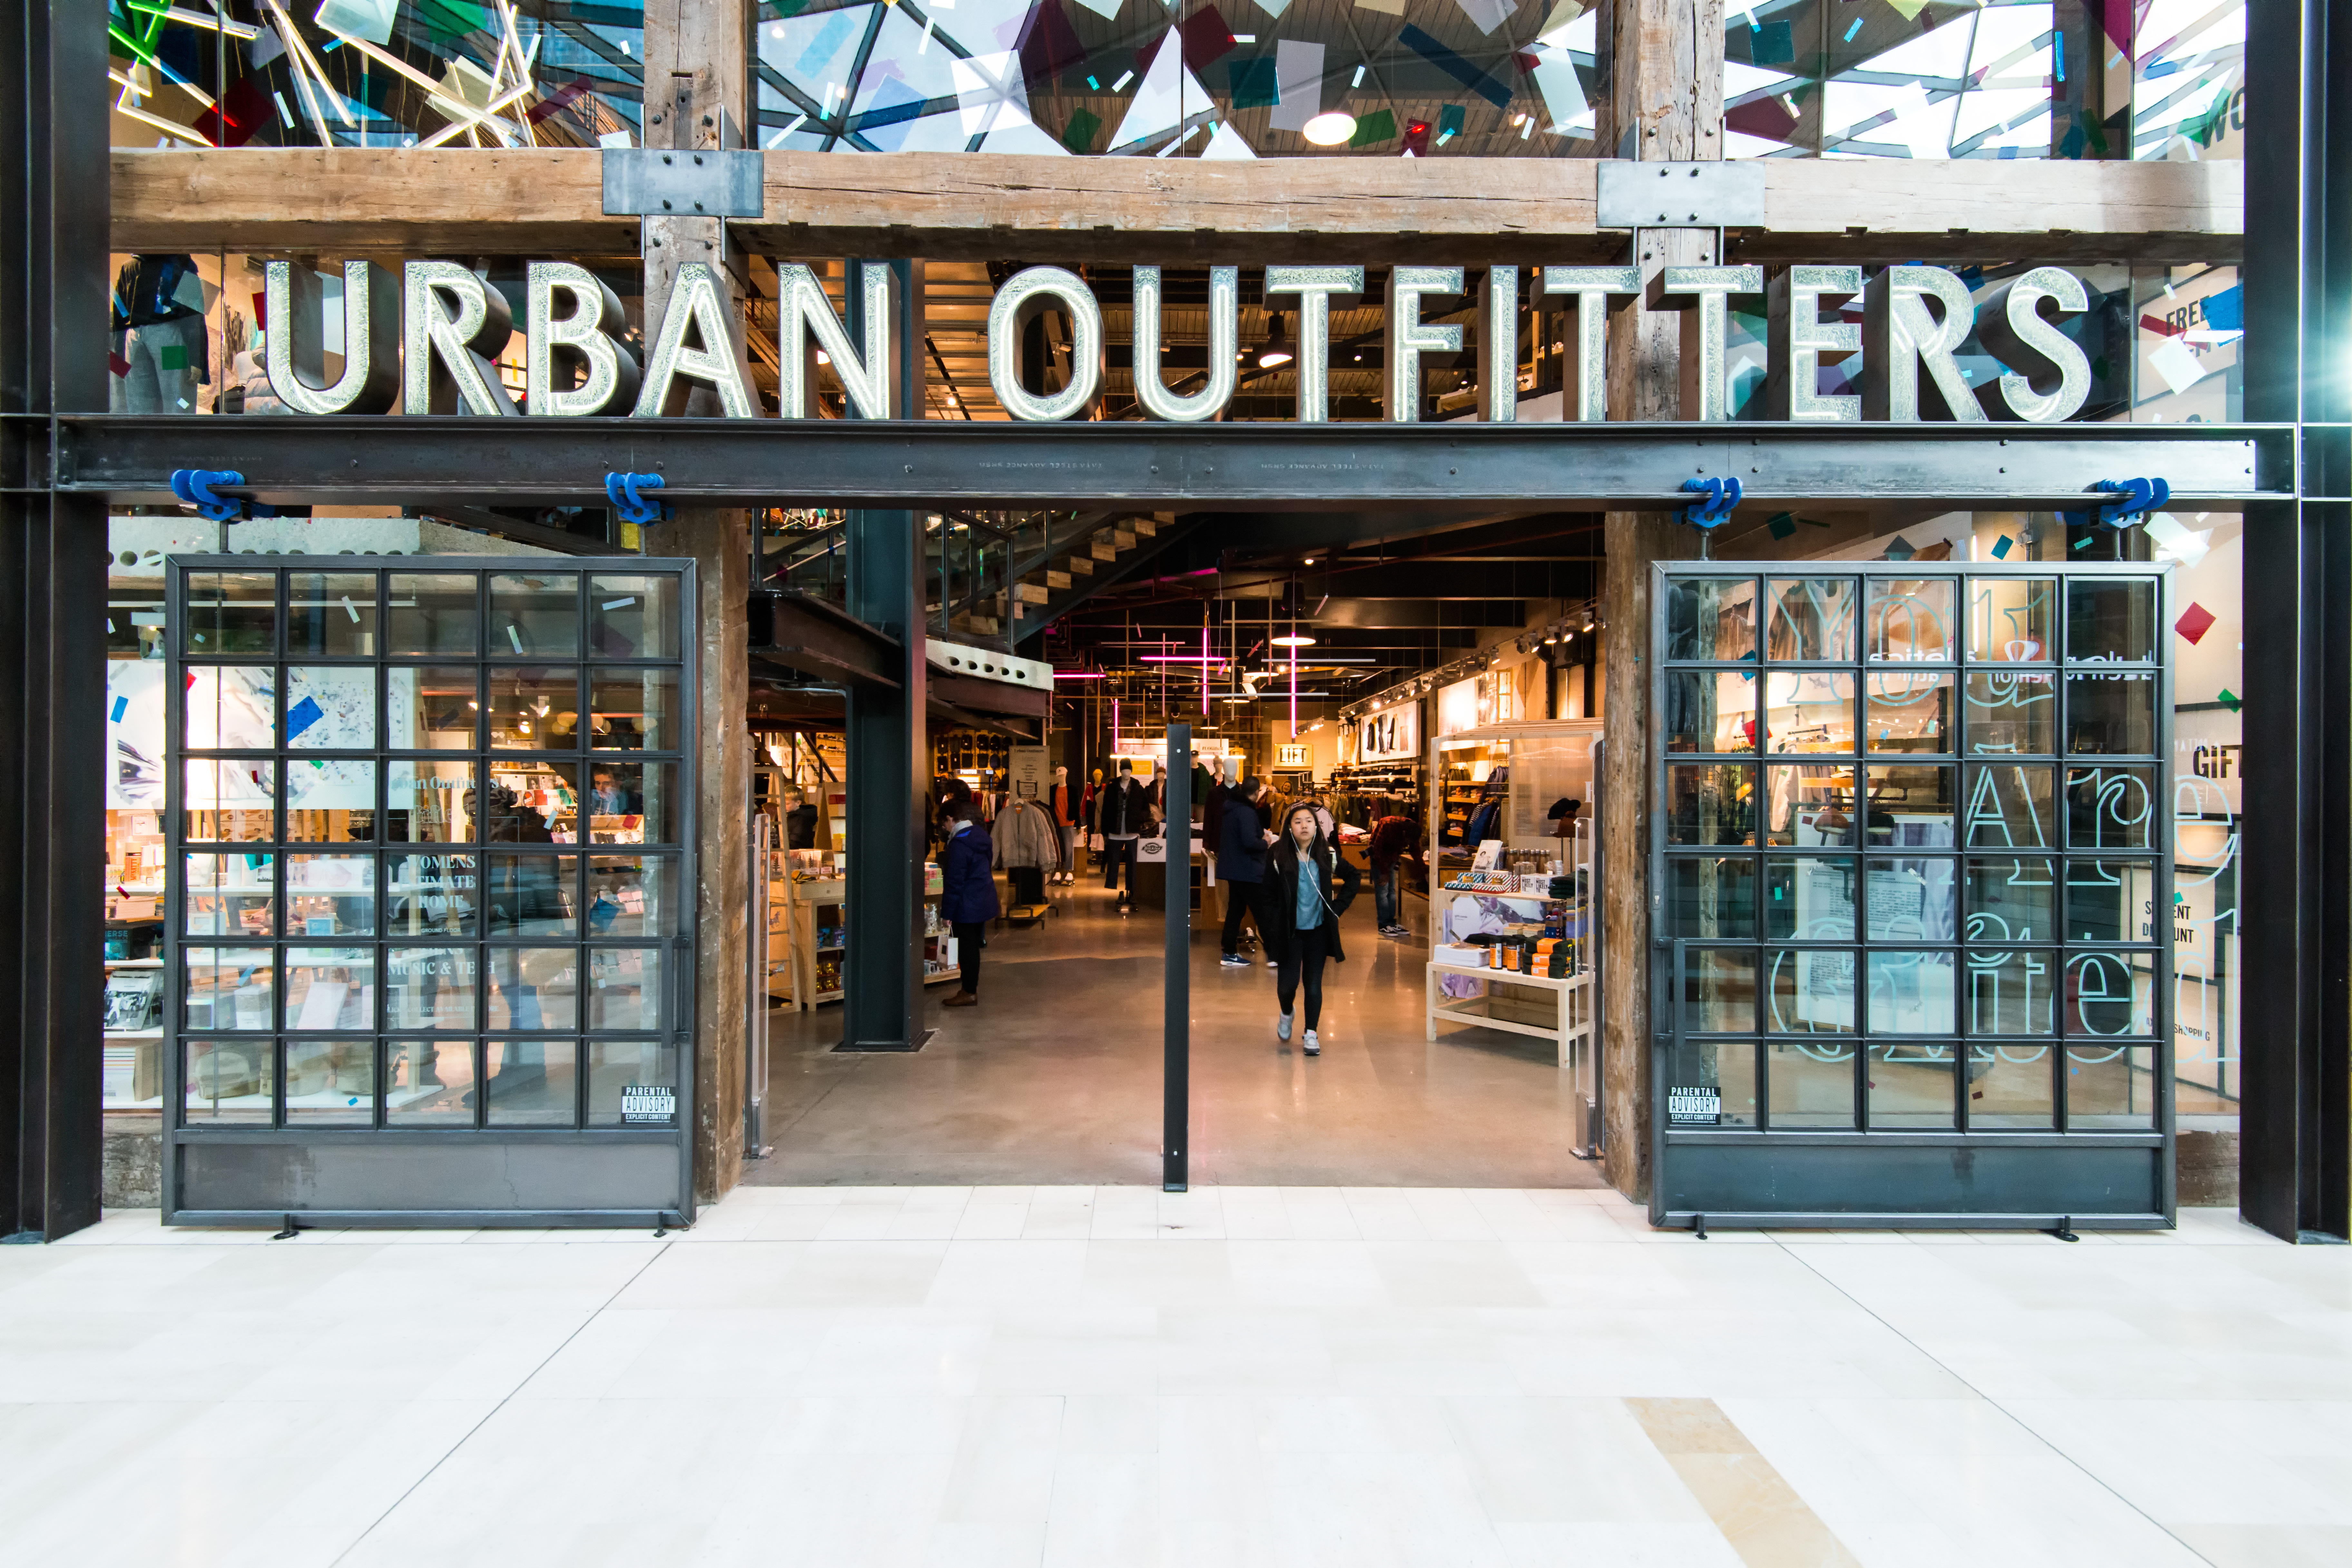 Urban Outfitters One Day Furniture Sale | Apartment Therapy